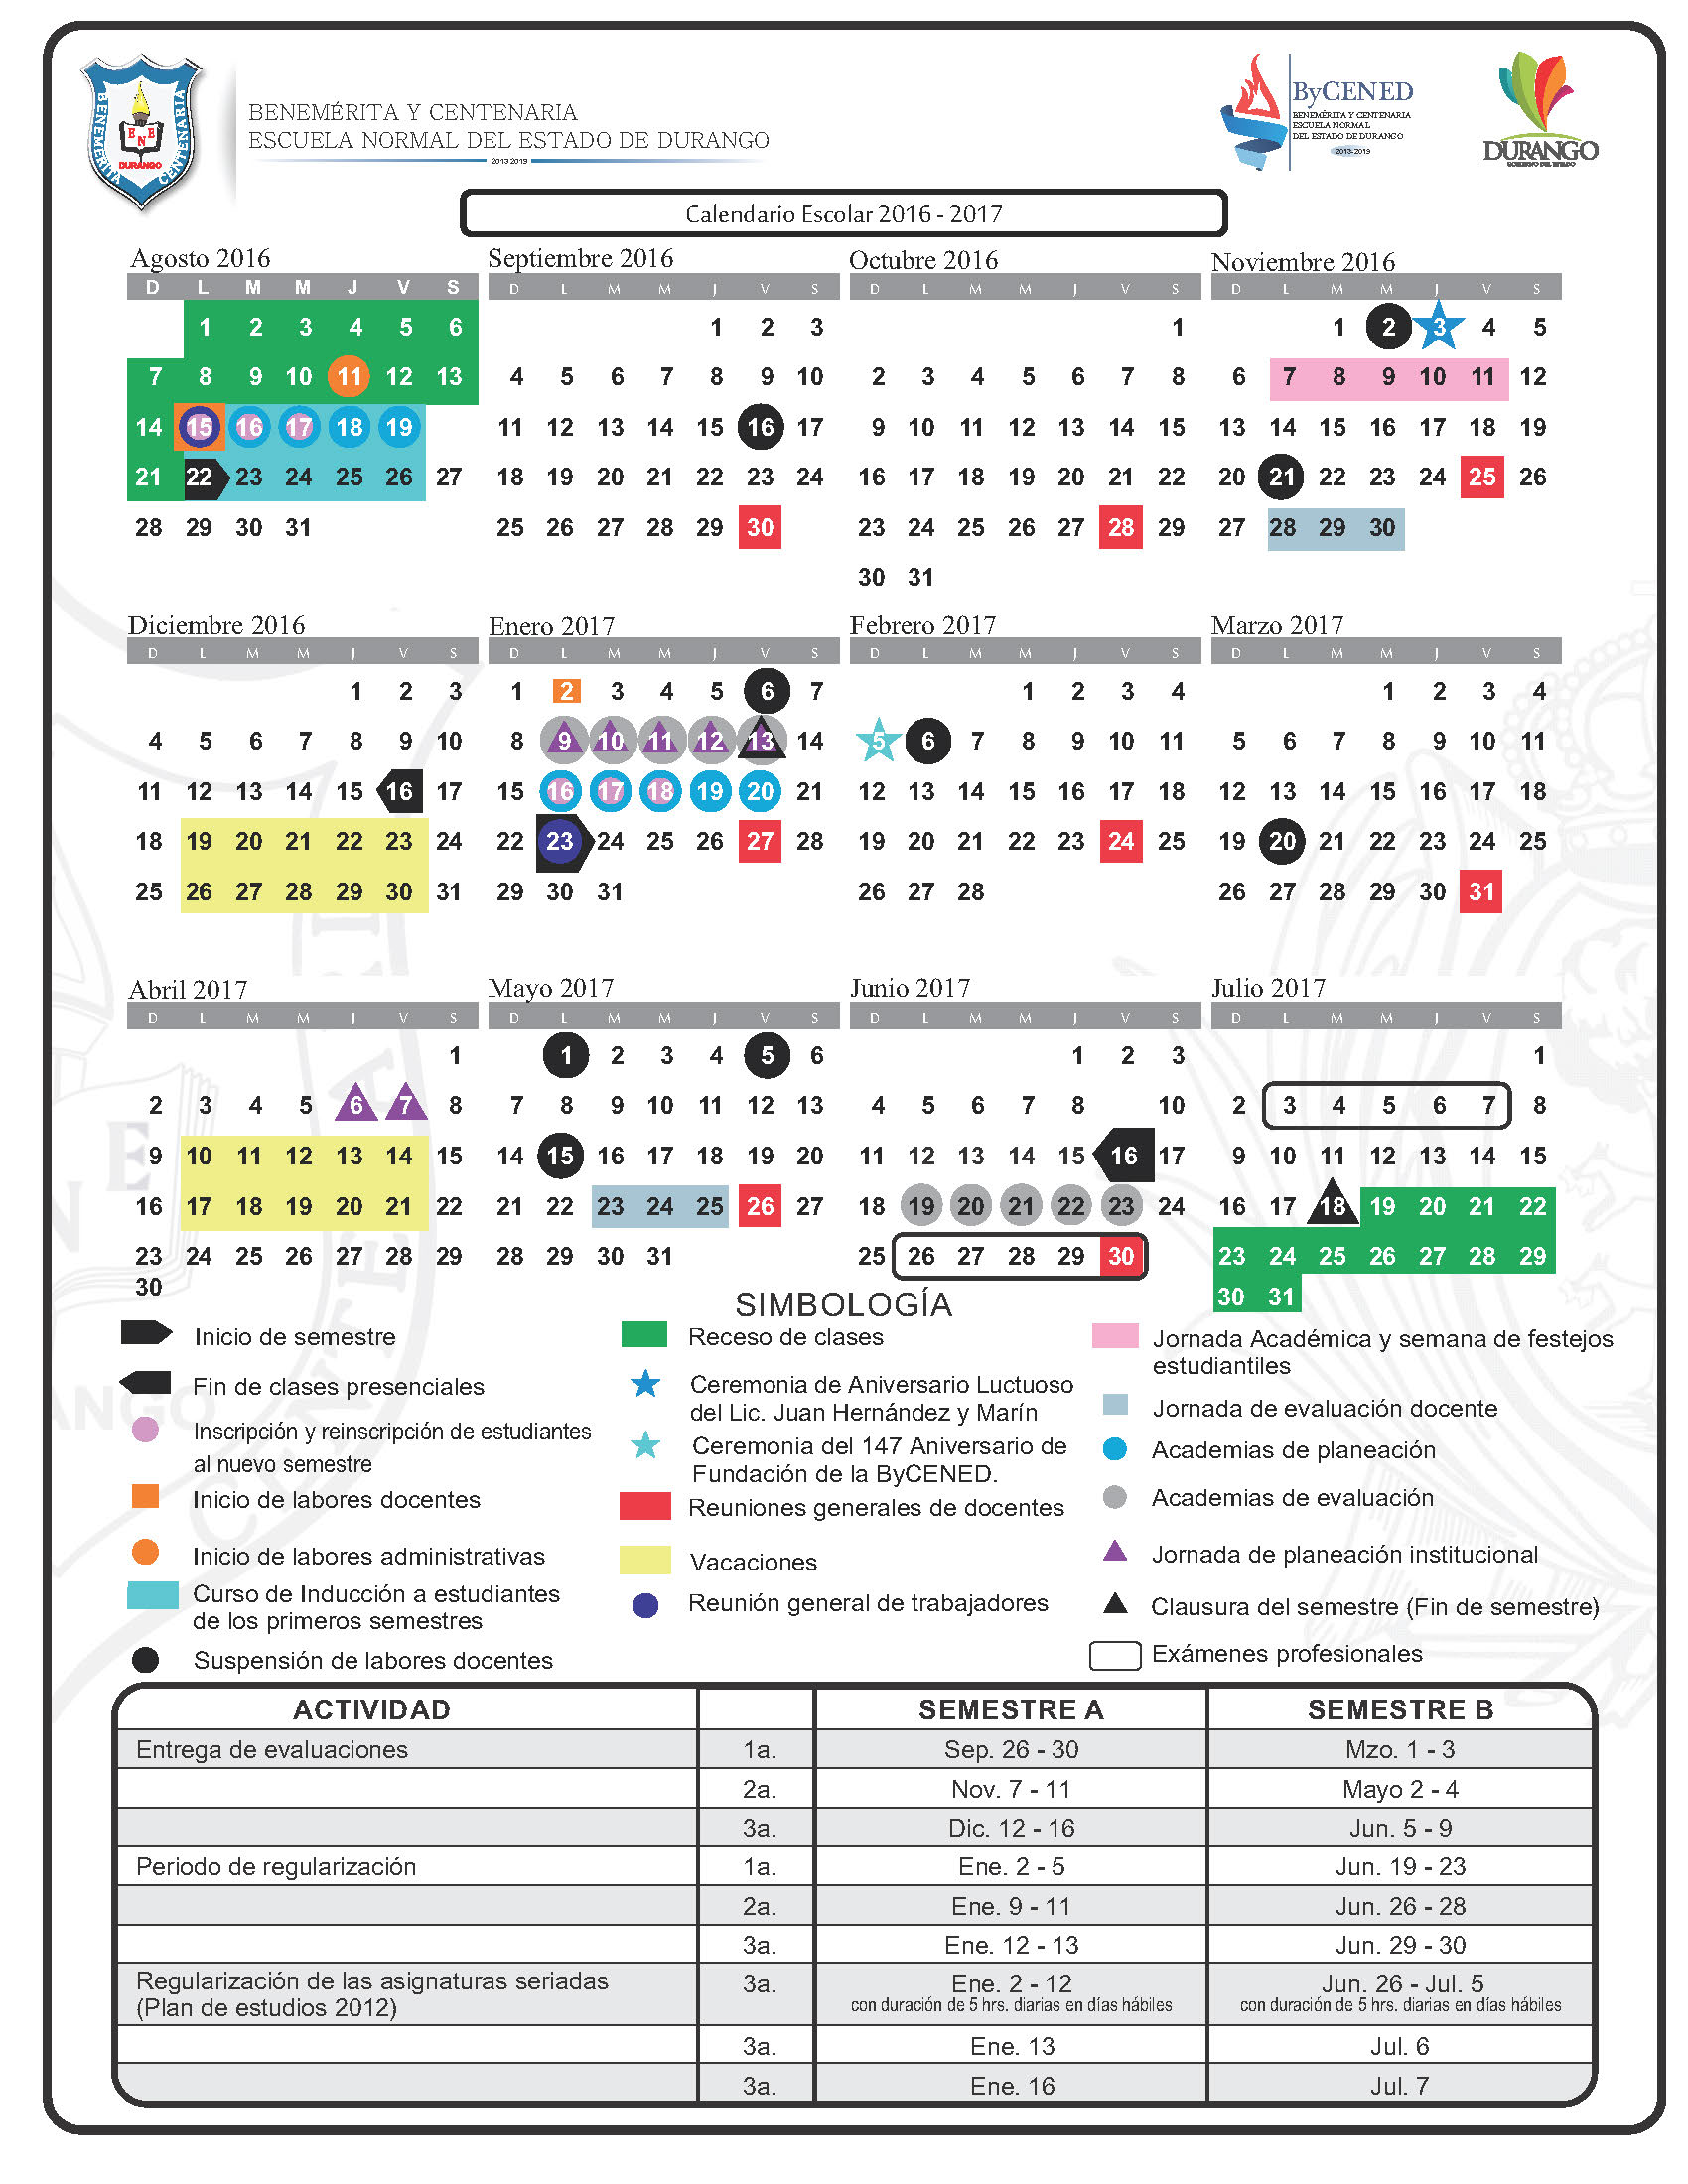 Calendario Escolar ByCENED 2016-2017 | Bycened